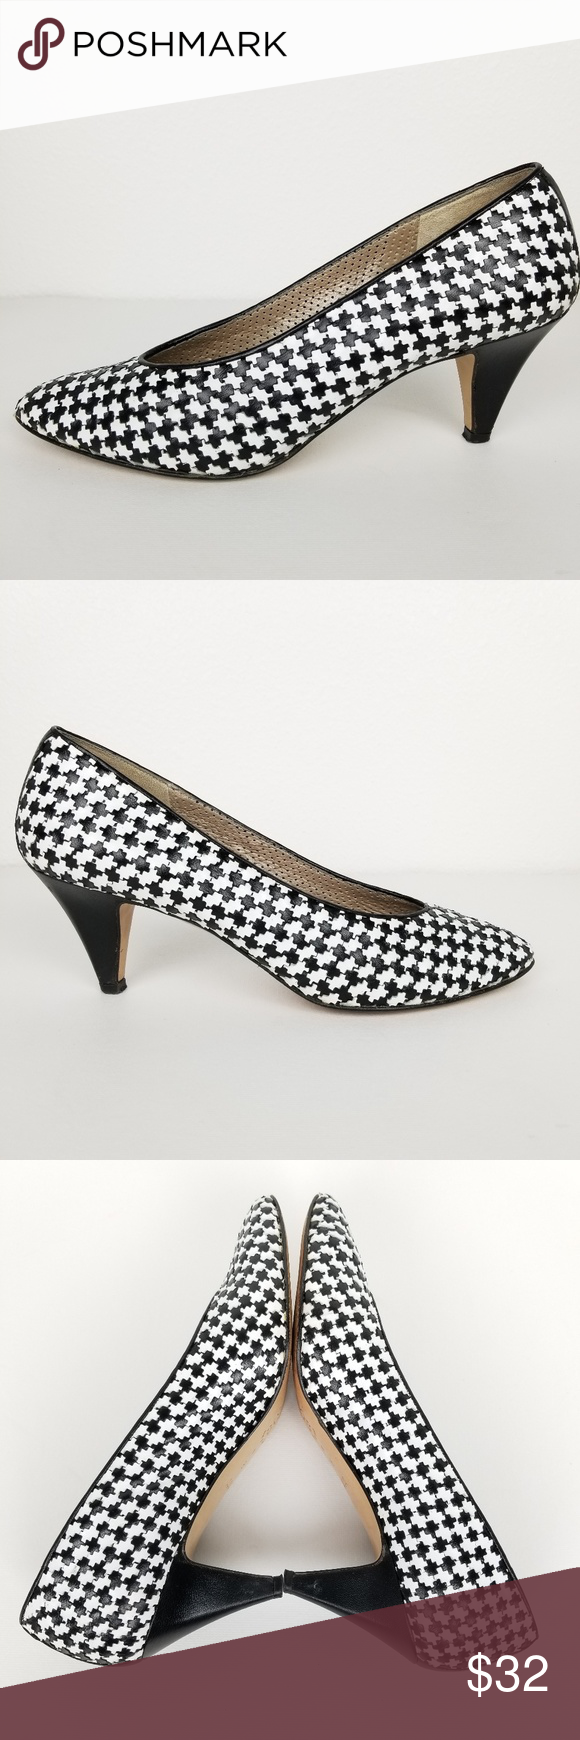 Amalfi   houndstooth   black & white   8AAA Amalfi heels • 8AAA NARROW • black & white houndstooth  • made in Italy  • leather sole Pre-owned, wear on the soles and a small snag on the inside of the right heel, please see photos. Otherwise, great condition.  Approximate measurements  • heel height: 3